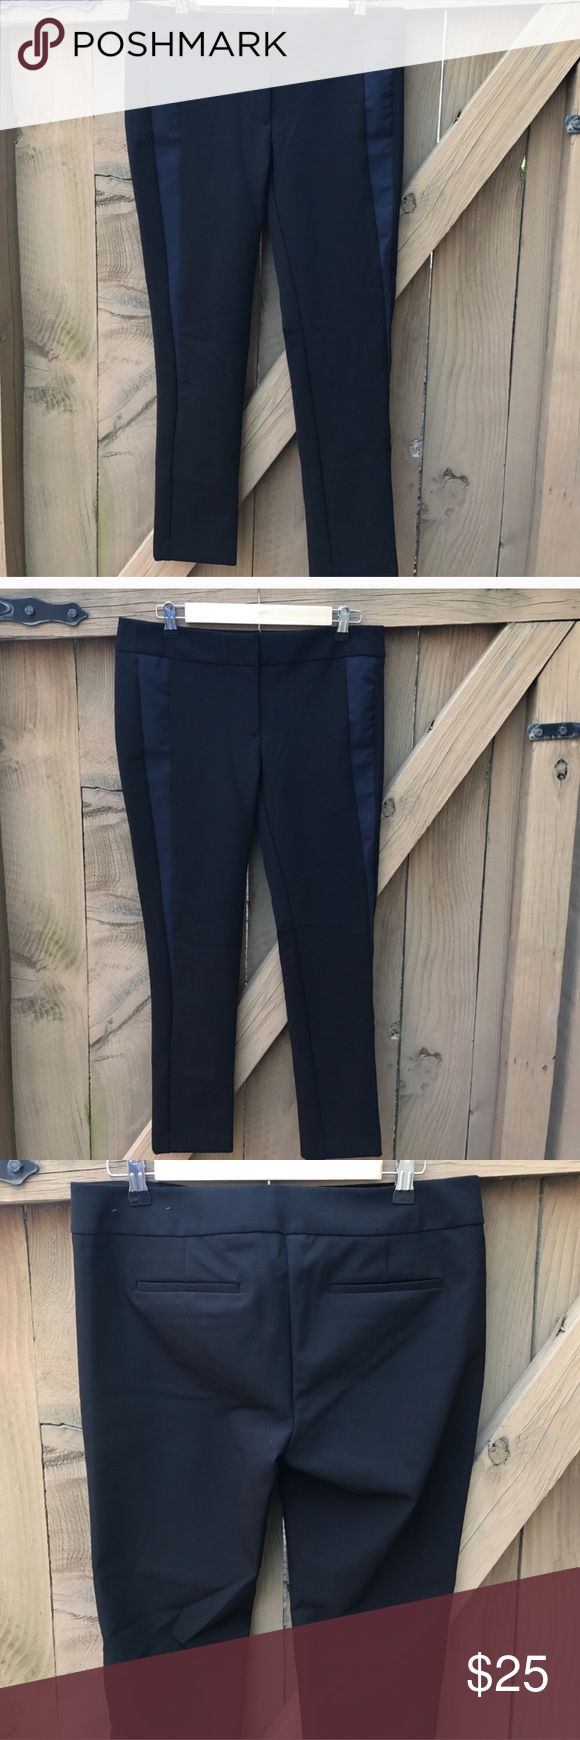 NWT size 6 P Ann Taylor black ankle pants NWT size 6 P Ann Taylor black ankle pants: BIN 4 Ann Taylor Pants Ankle & Cropped